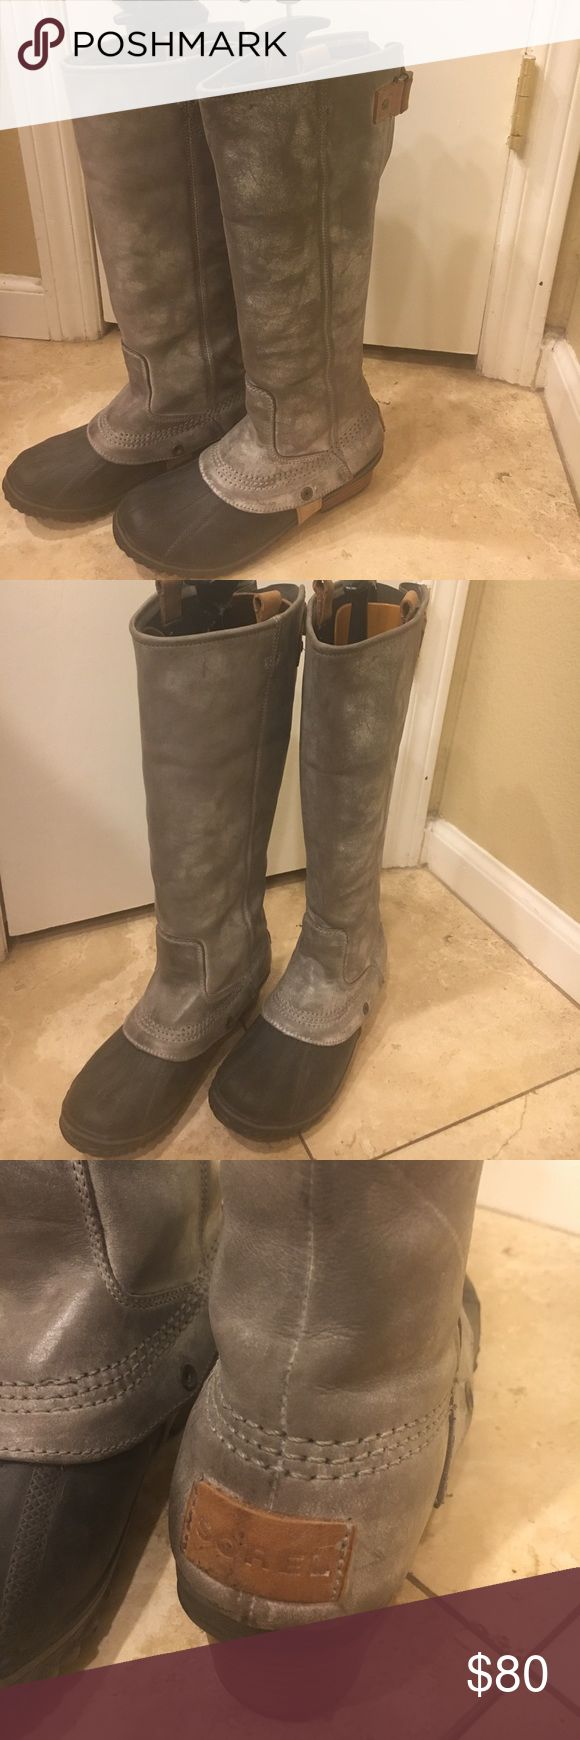 Sorel duck boots Gray Brand new Grey Sorel Duck Boots great for barn snow and other outdoor activities in the winter time Sorel Shoes Winter & Rain Boots